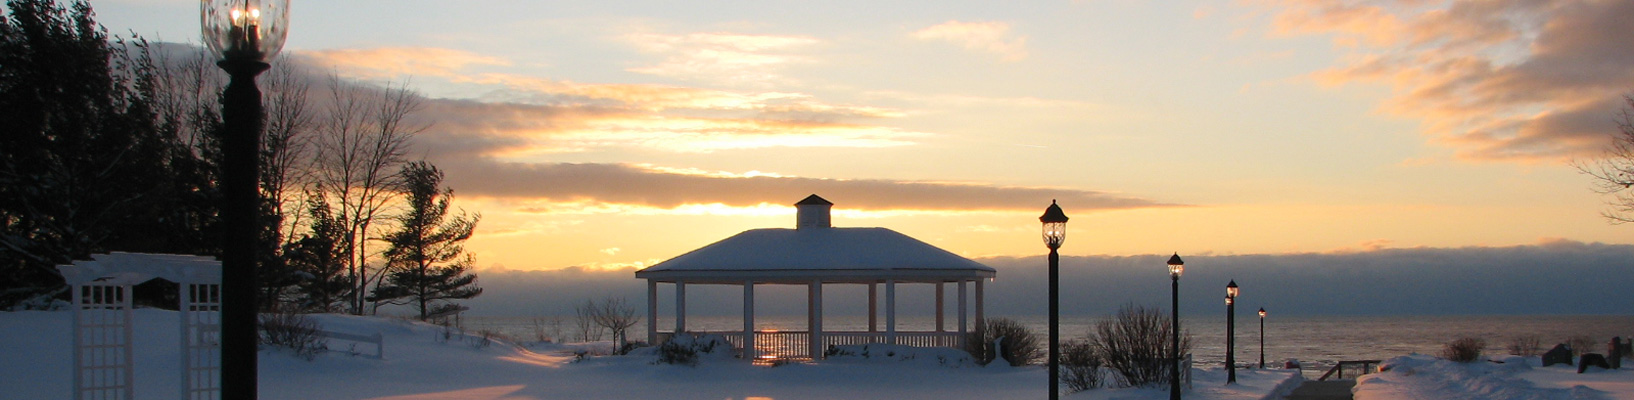 slide-winter-gazebo